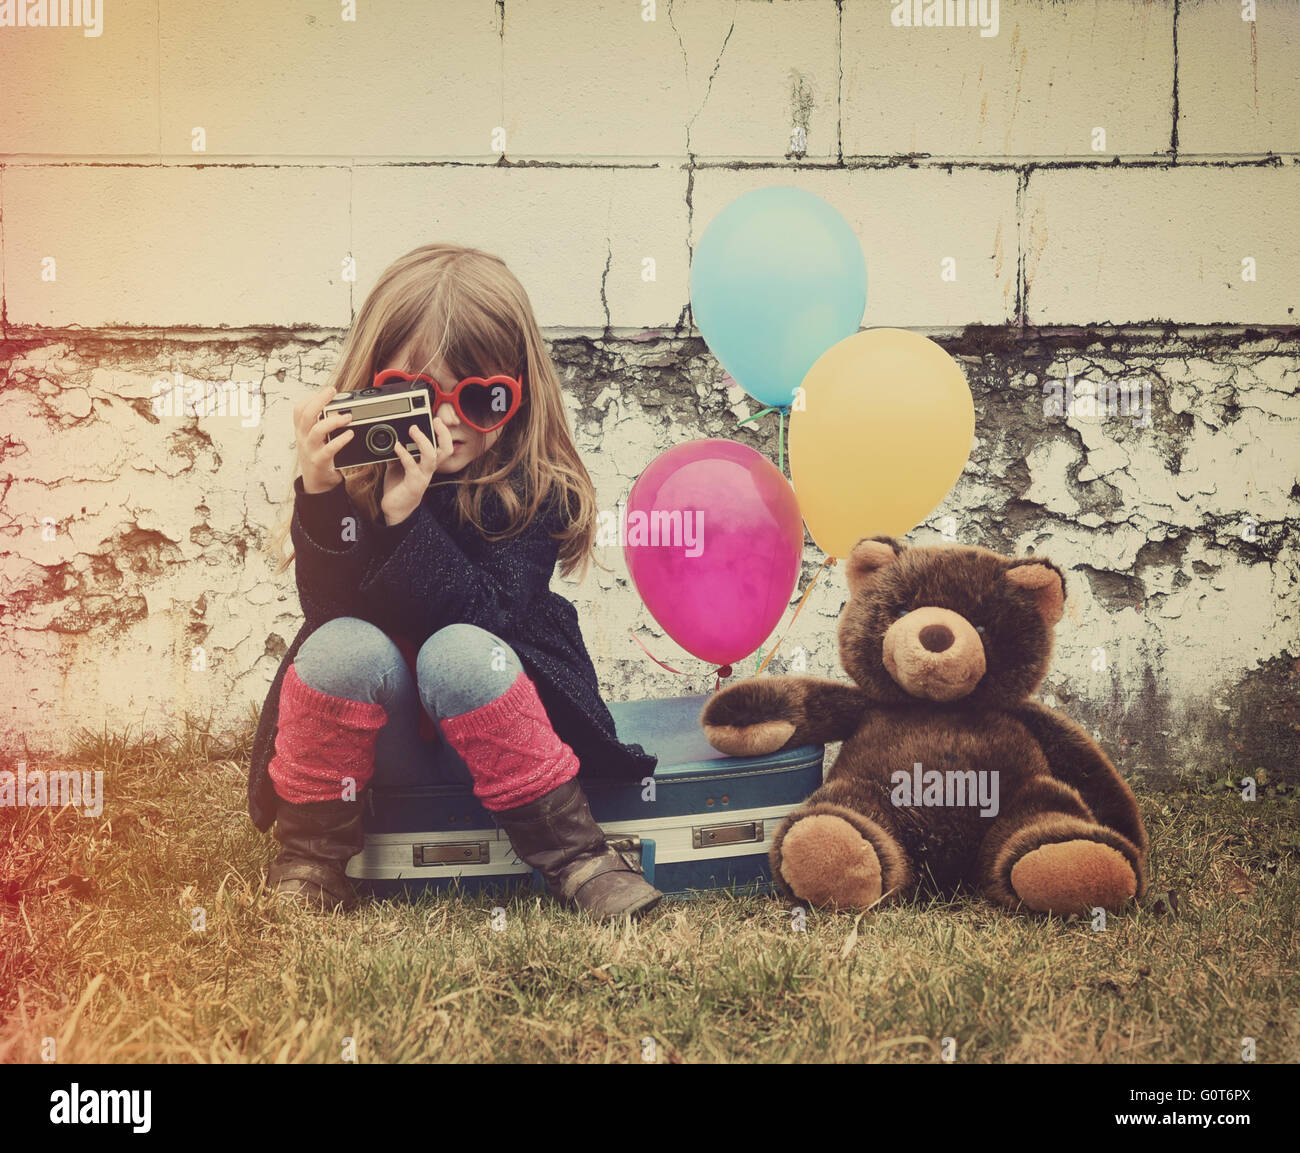 A photo of a vintage child taking a picture with old camera against a brick wall, balloons and a teddy bear for Stock Photo